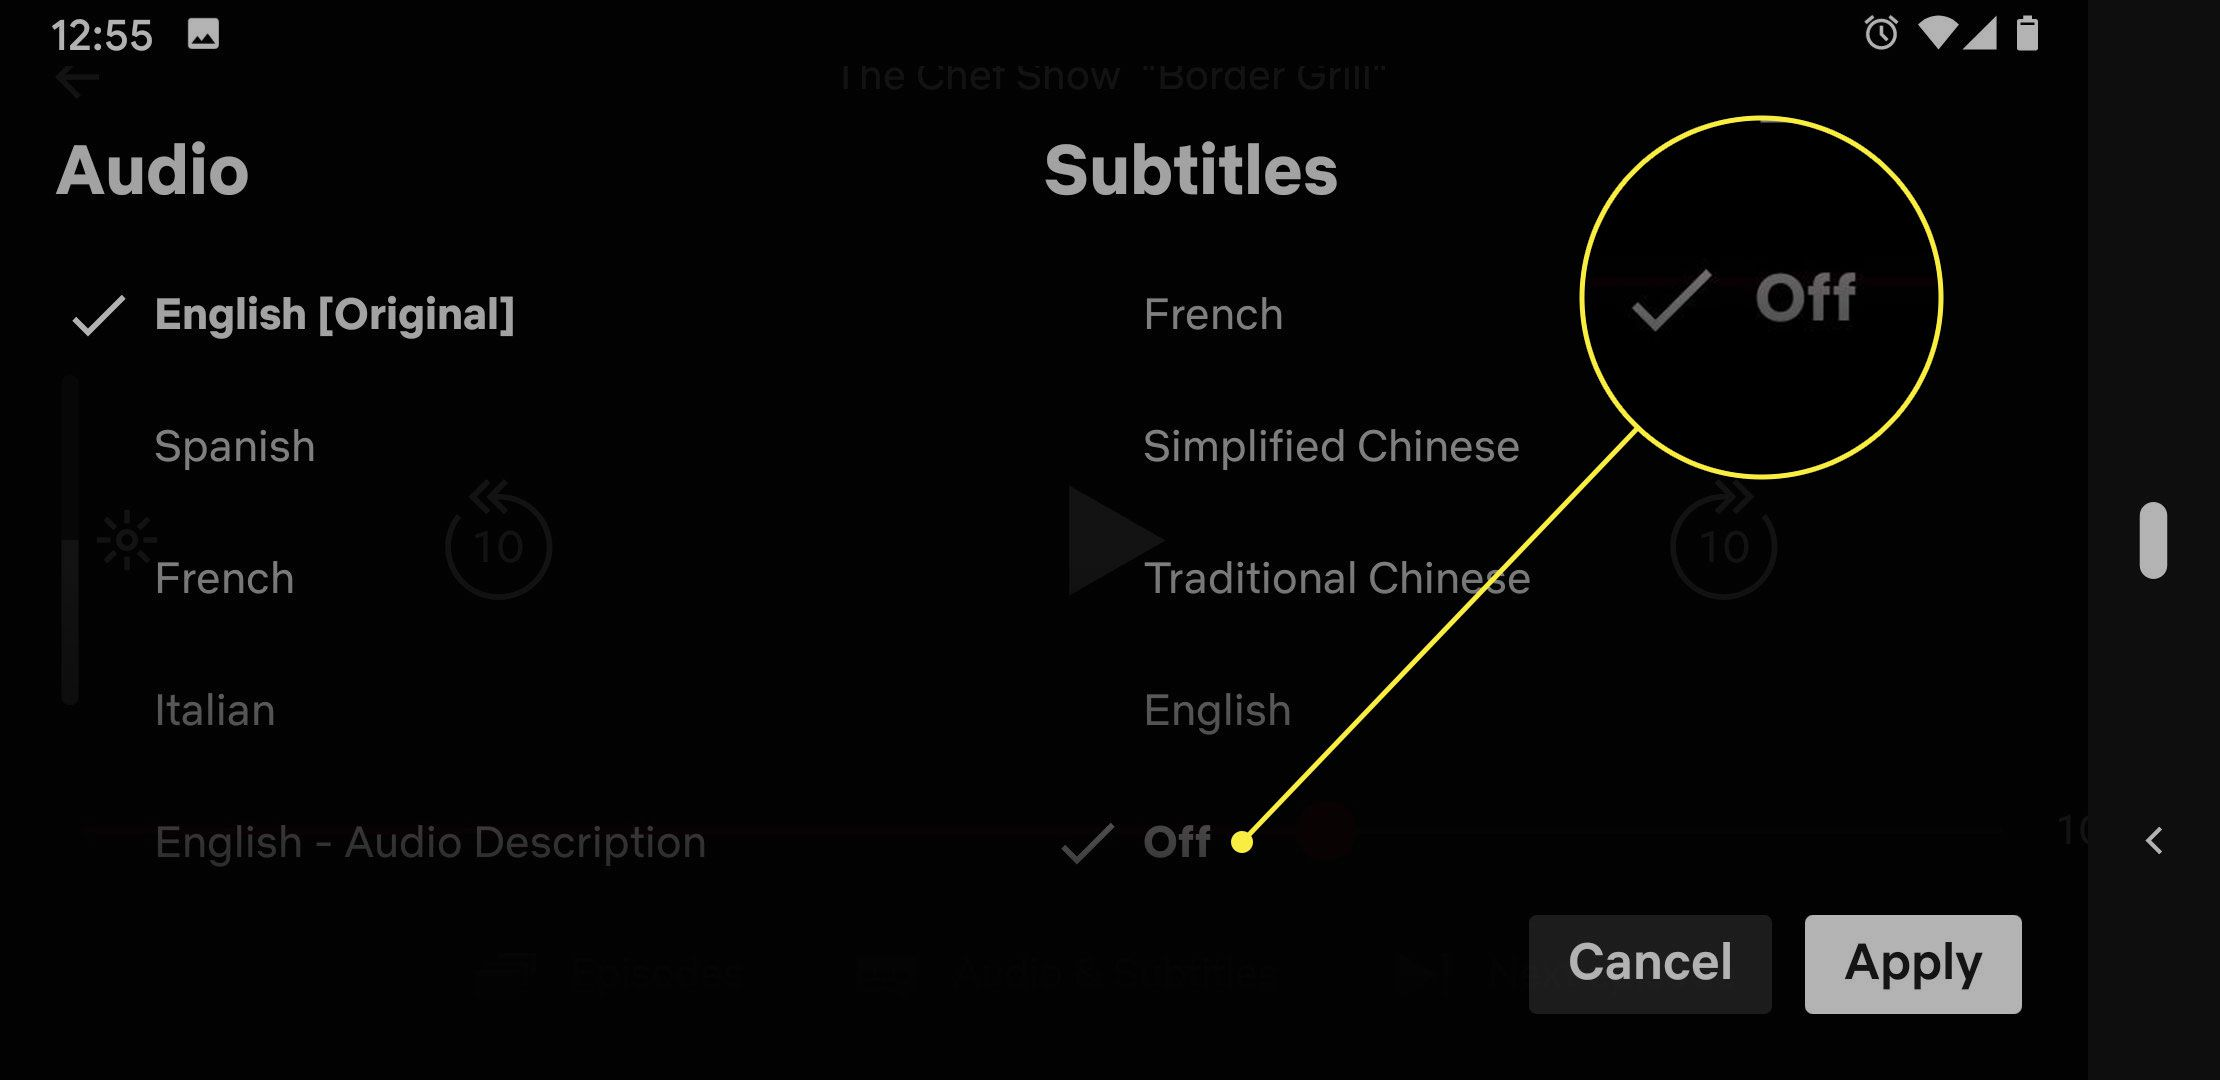 A screenshot of the Audio & Subtitles menu in Netflix with the Off option highlighted